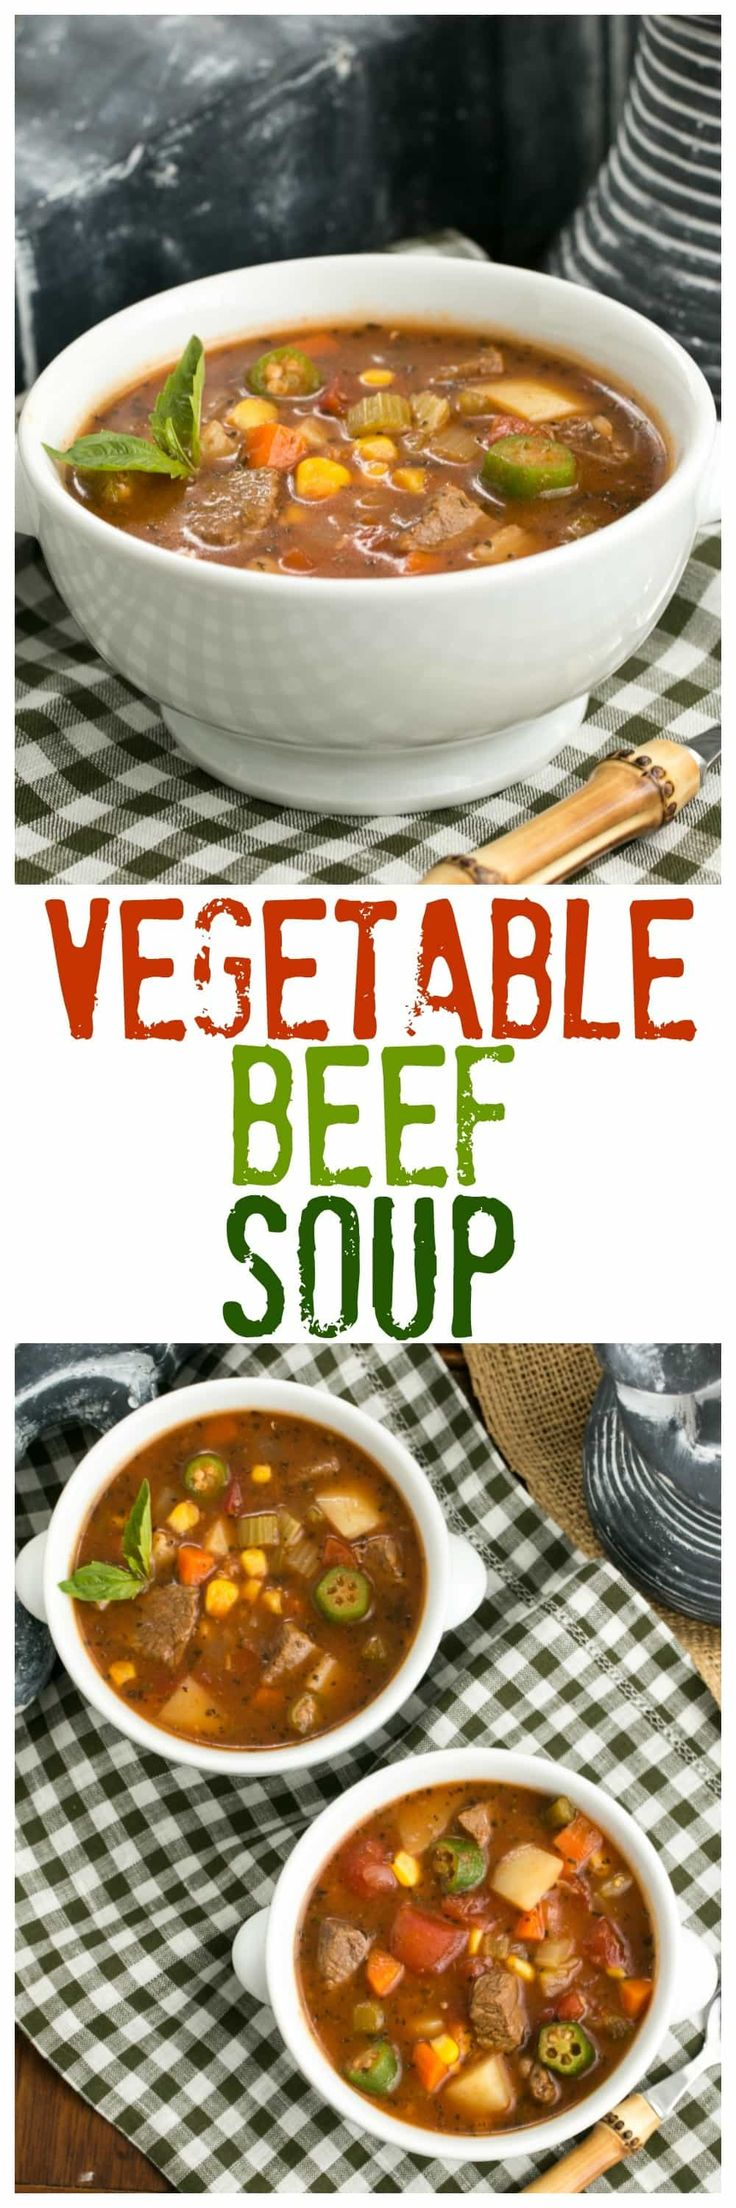 Vegetable Beef Soup | A healthy soup chock full of vegetables and lean beef #SundaySupper @lizzydo